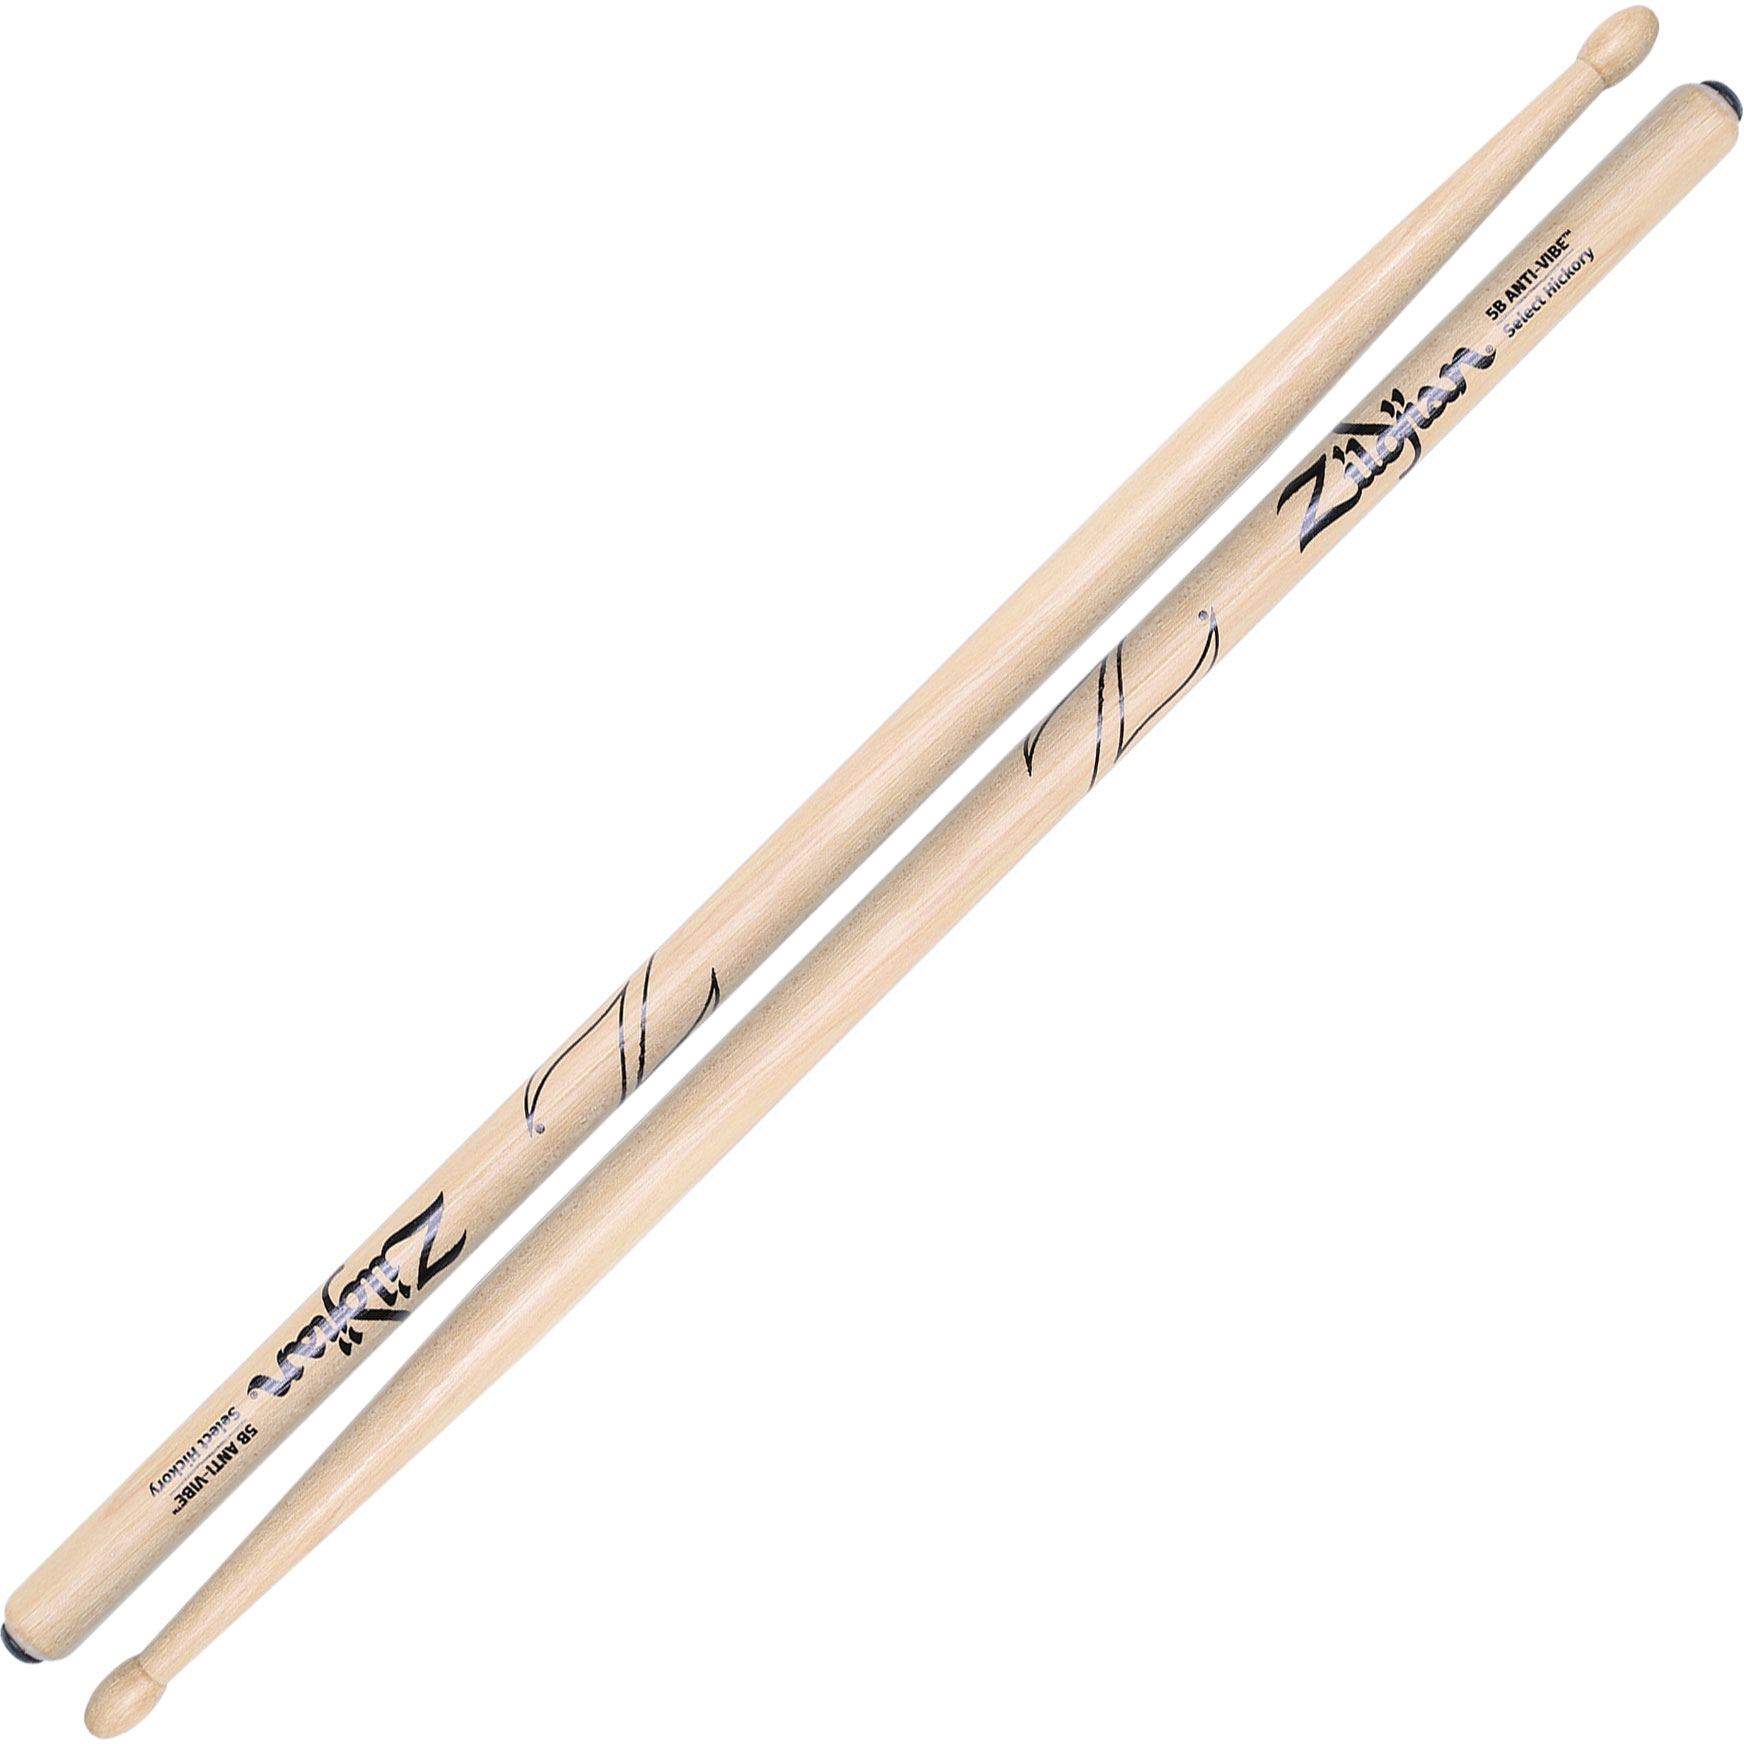 Zildjian Select Hickory Anti-Vibe 5B Drumsticks